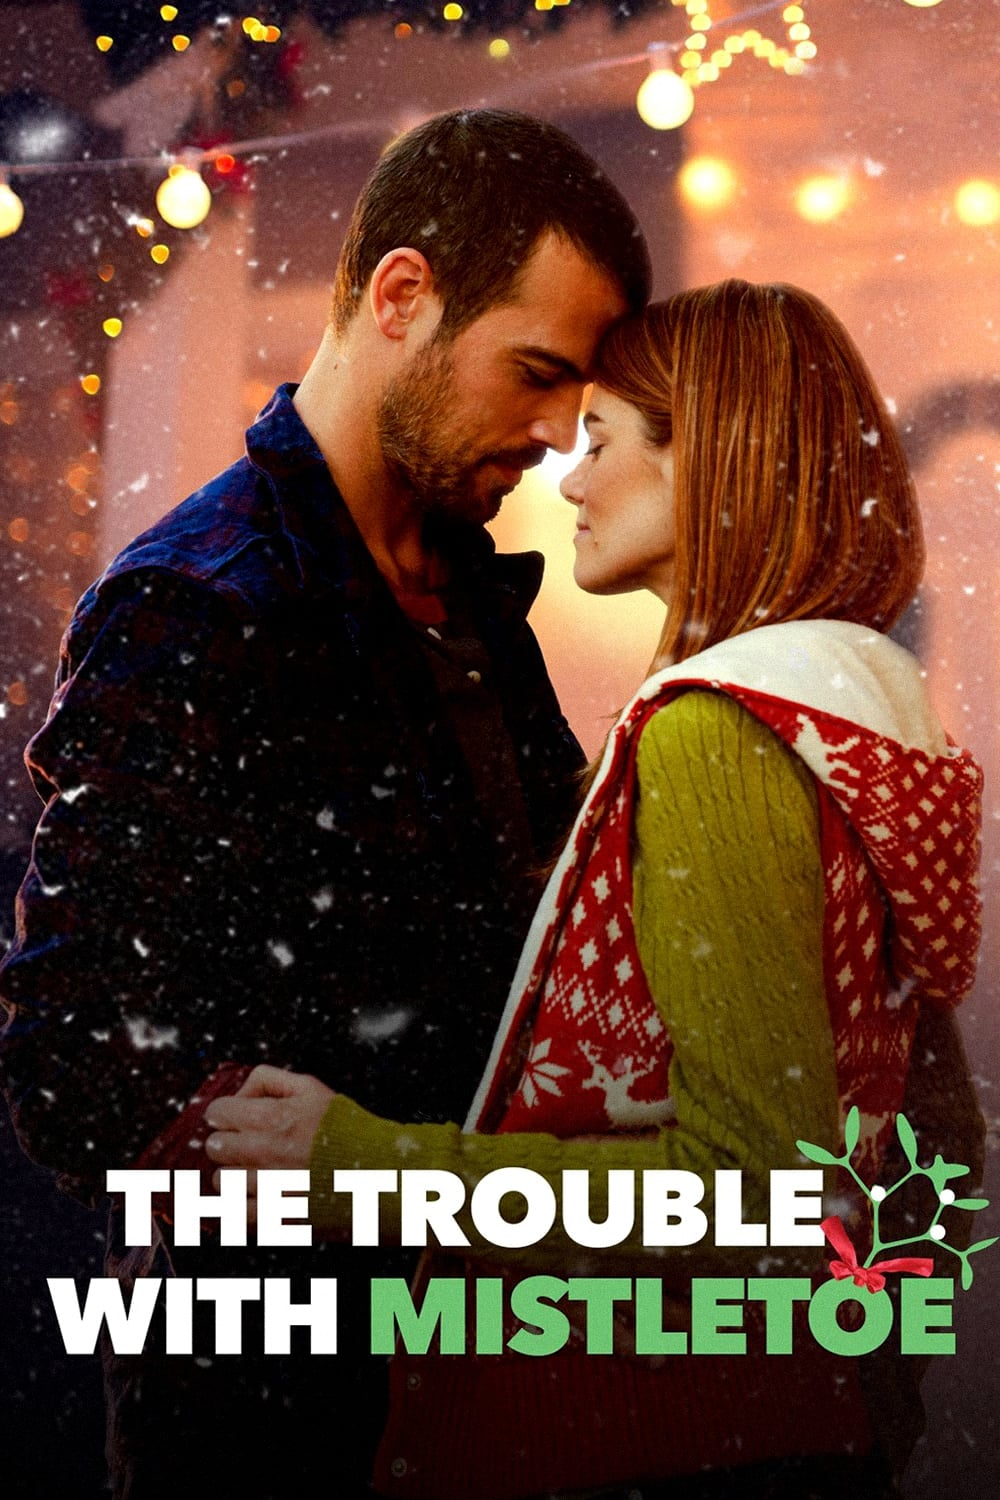 Image The Trouble with Mistletoe